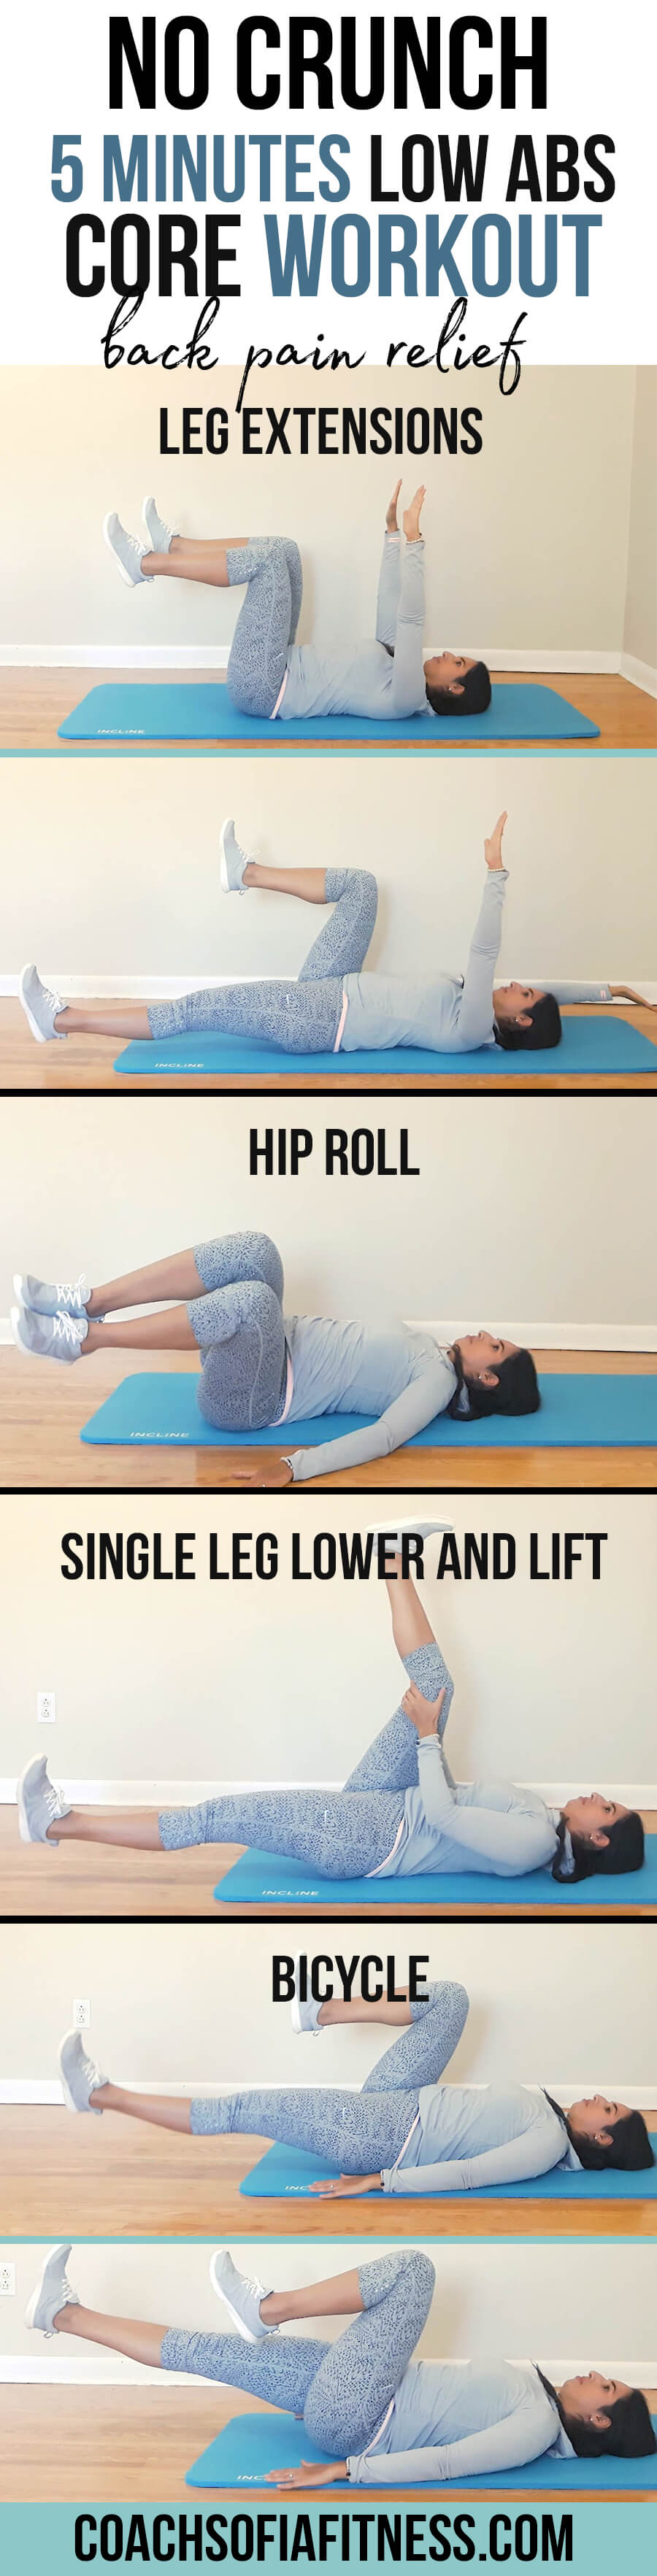 I've been really loving taking a break during the day to do my 5 minute routines, and today I have for you another one to activate and strengthen the lower abdominals and core muscles. Again, this is a no crunch routine.  If you have back pain, piriformis syndrome, pelvic pain and just chronic pain in your hips you HAVE to move your body in a way that helps you increase blood flow and strengthen those muscles to protect your hips and spine. 